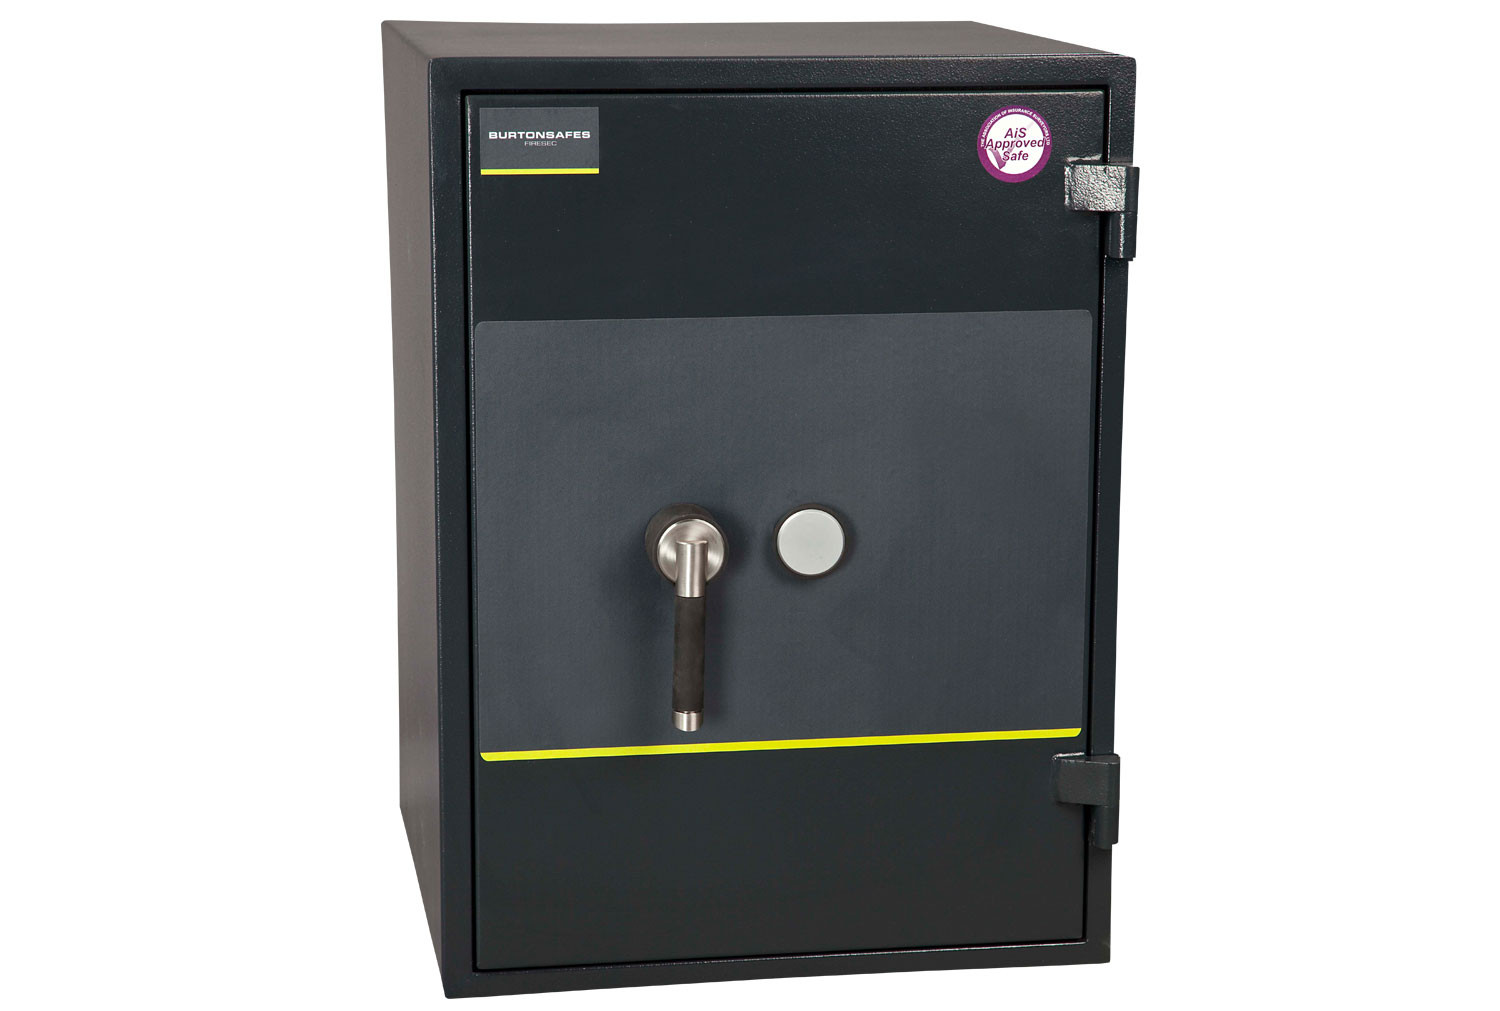 Burton Firesec 10/60 Fire Safe Size 2 With Key Lock (93ltrs)